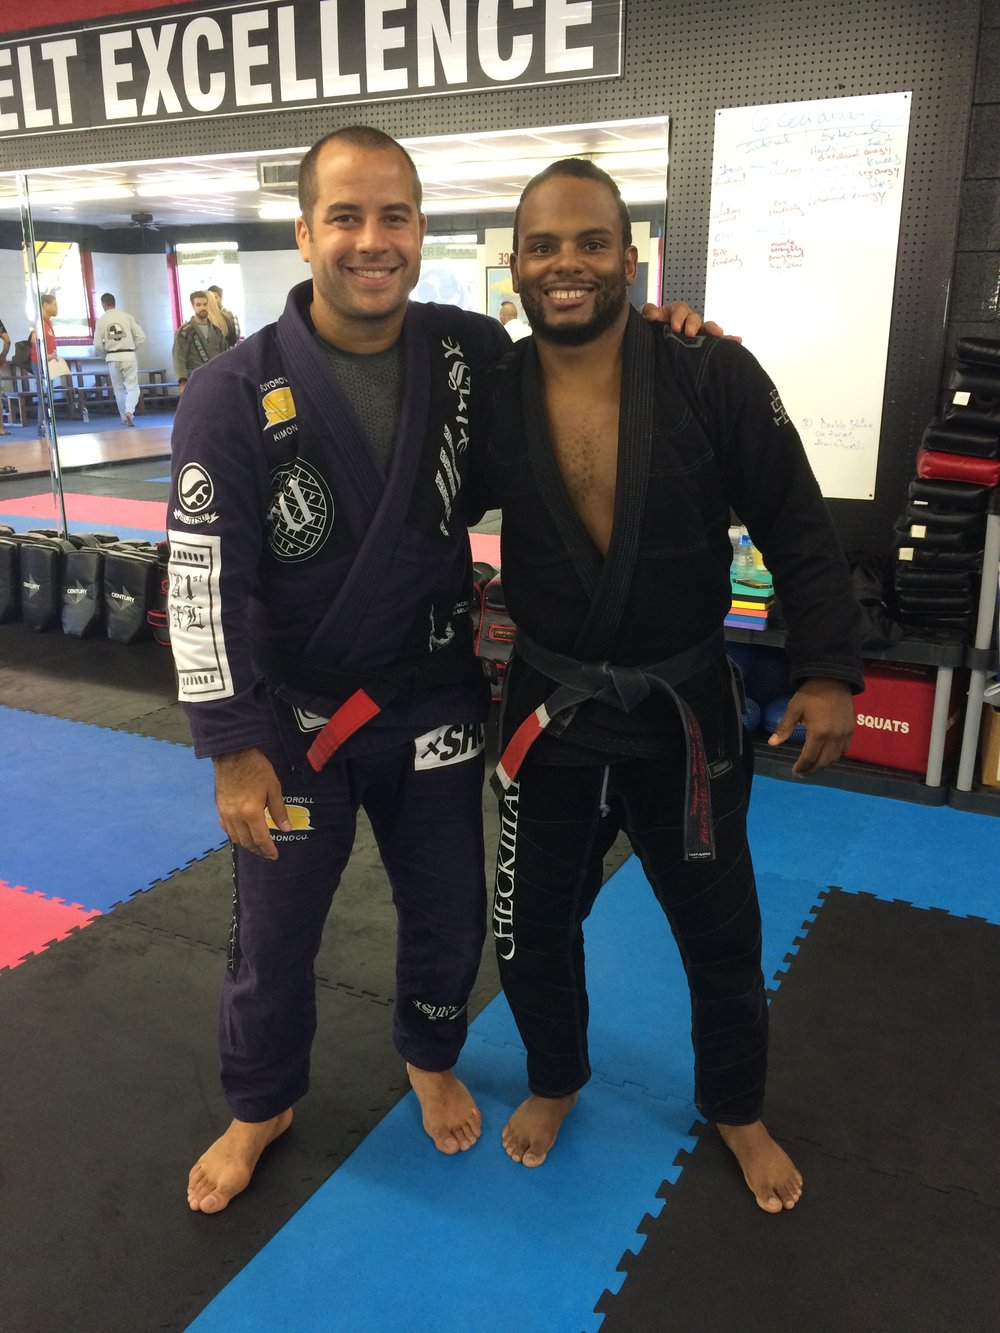 Leo Vieira - Leonardo Vieira, also known as Leozinho or simply Leo Vieira, is a Brazilian Jiu Jitsu black belt under Romero Cavalcanti, being famous for combining one of the most eye pleasing games in BJJ with an amazing track record. Leo Vieira was also the co-founder of important teams such as Brasa Clube de Jiu Jitsu and Checkmat BJJ, becoming in the process one of grappling's most important coaches by developing athletes such as Marcus Almeida 'Buchecha', Lucas Leite, João Assis and many others. Leozinho is also one of the Top BJJ Competitors of All Time by BJJ Heroes.Click HERE for more on Leo Vieira